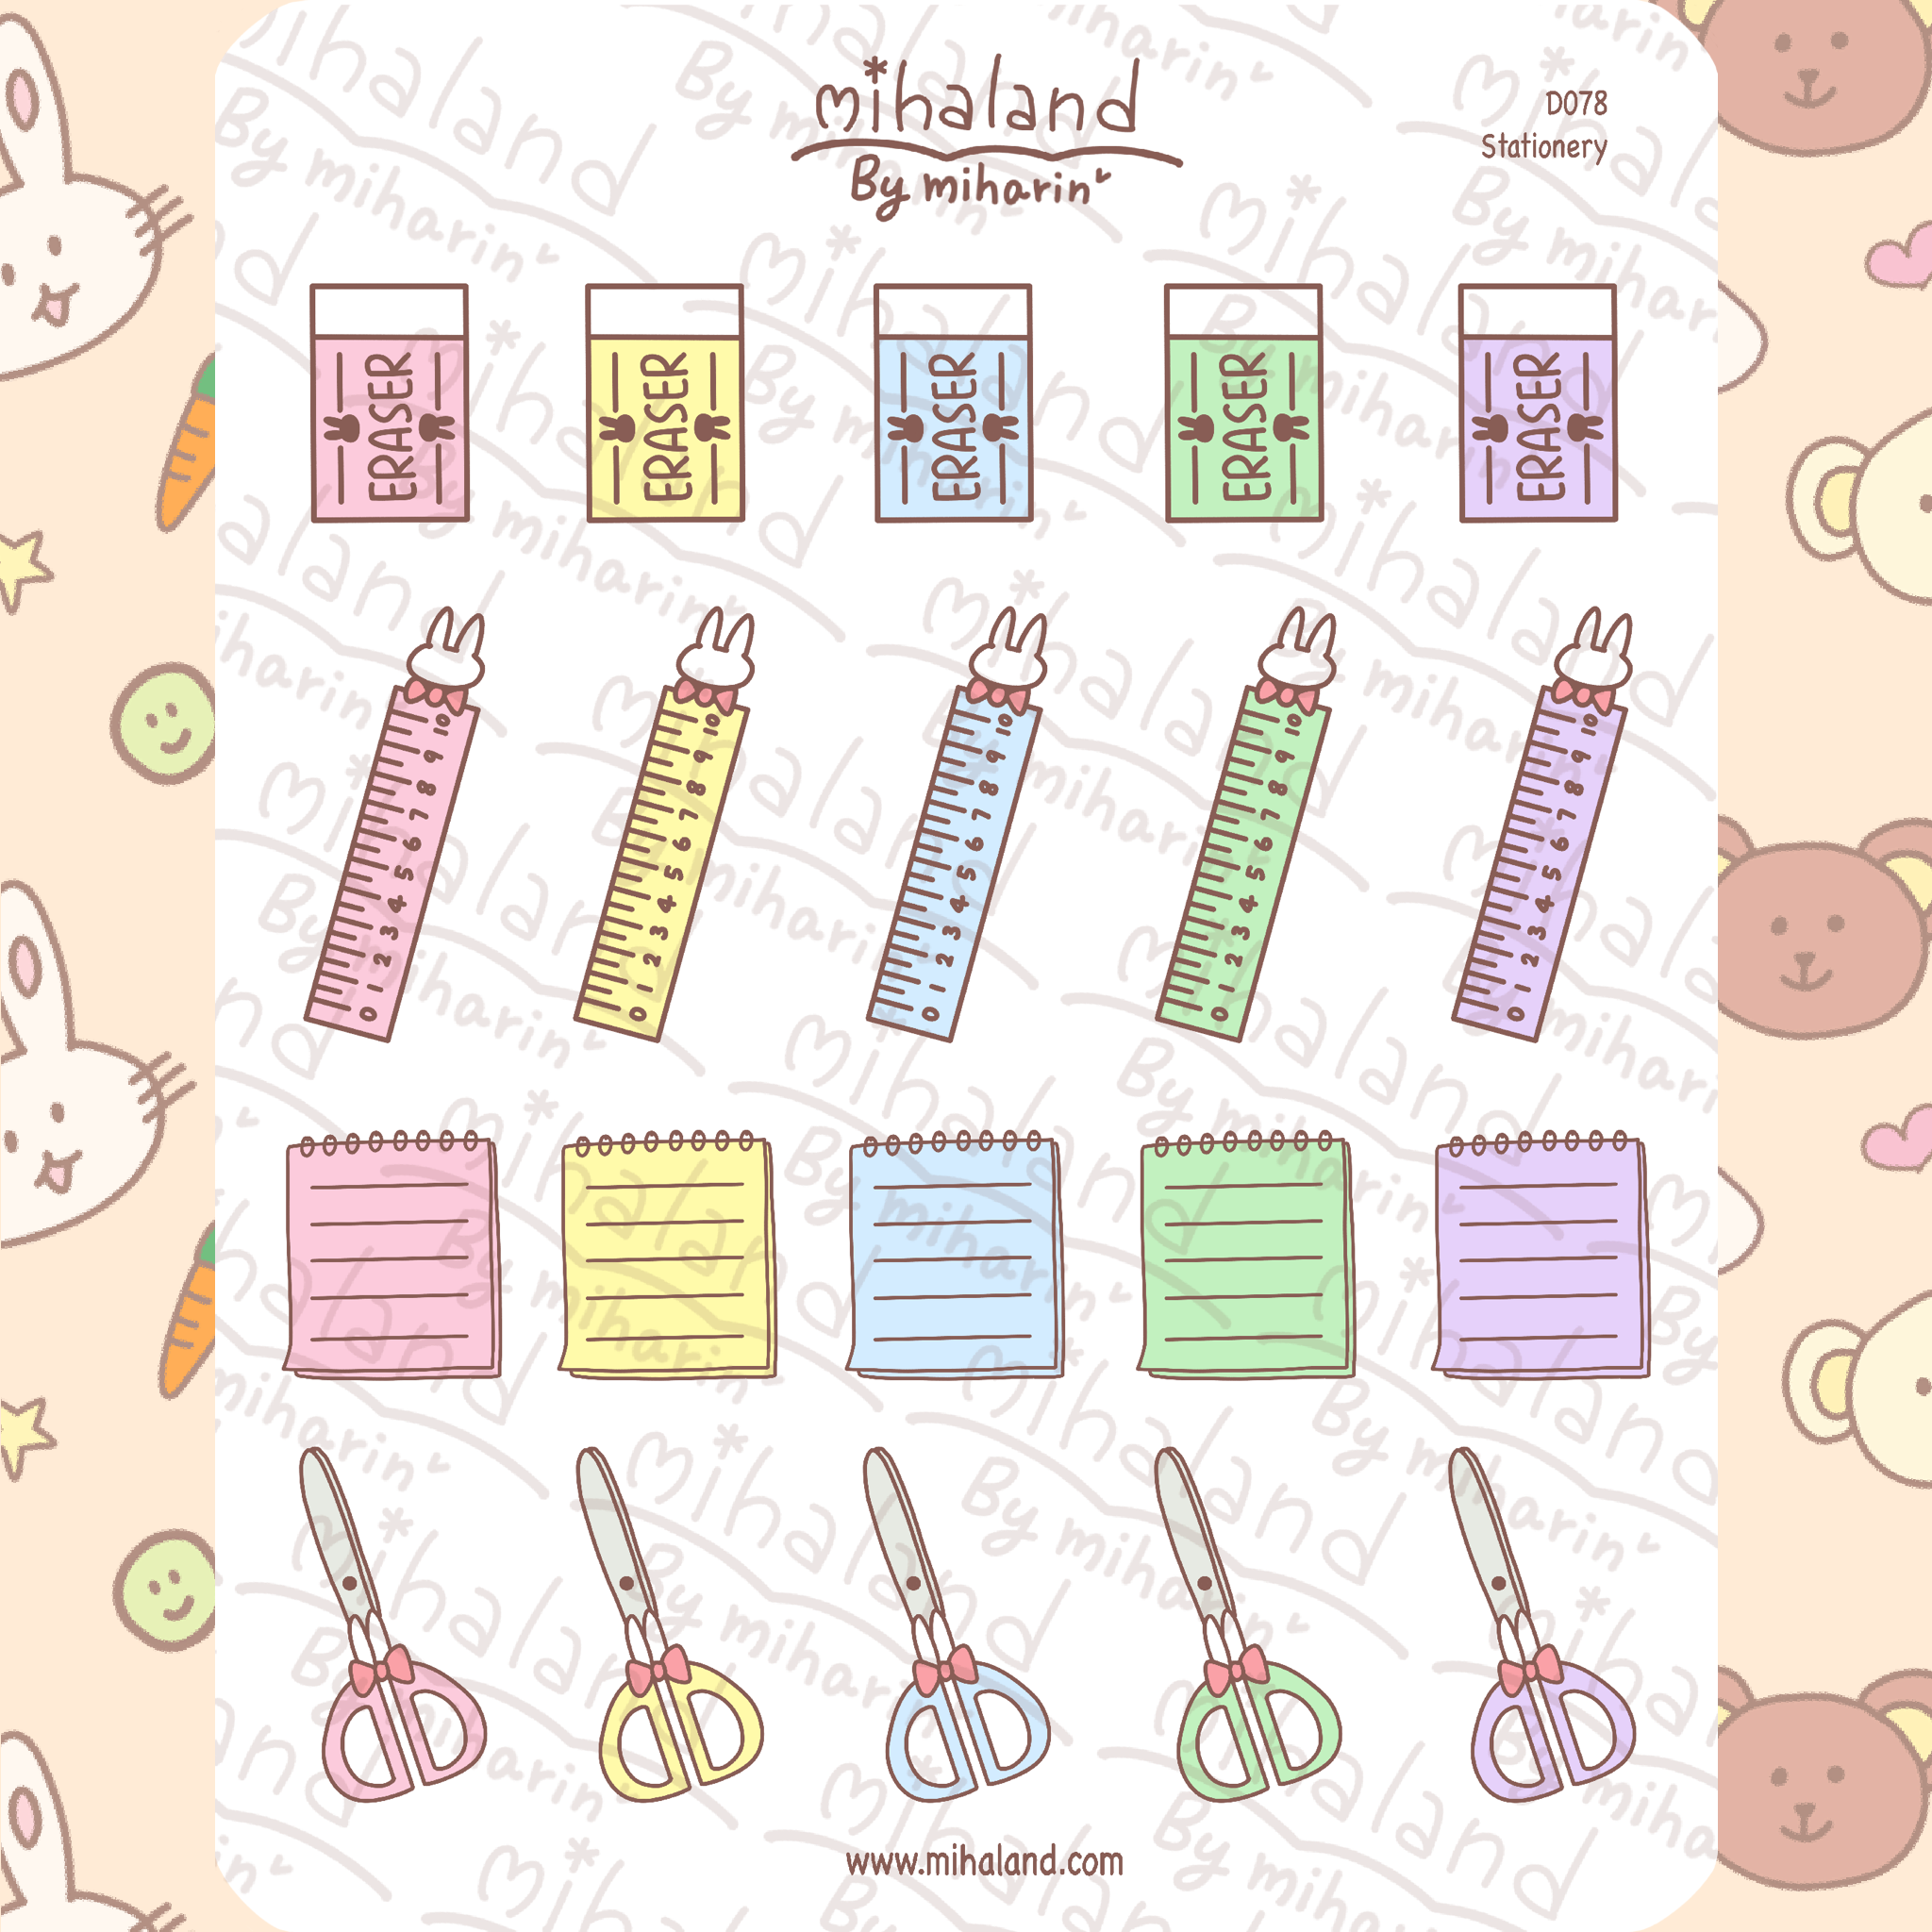 mihaland - Stationery Planner Stickers (D078)